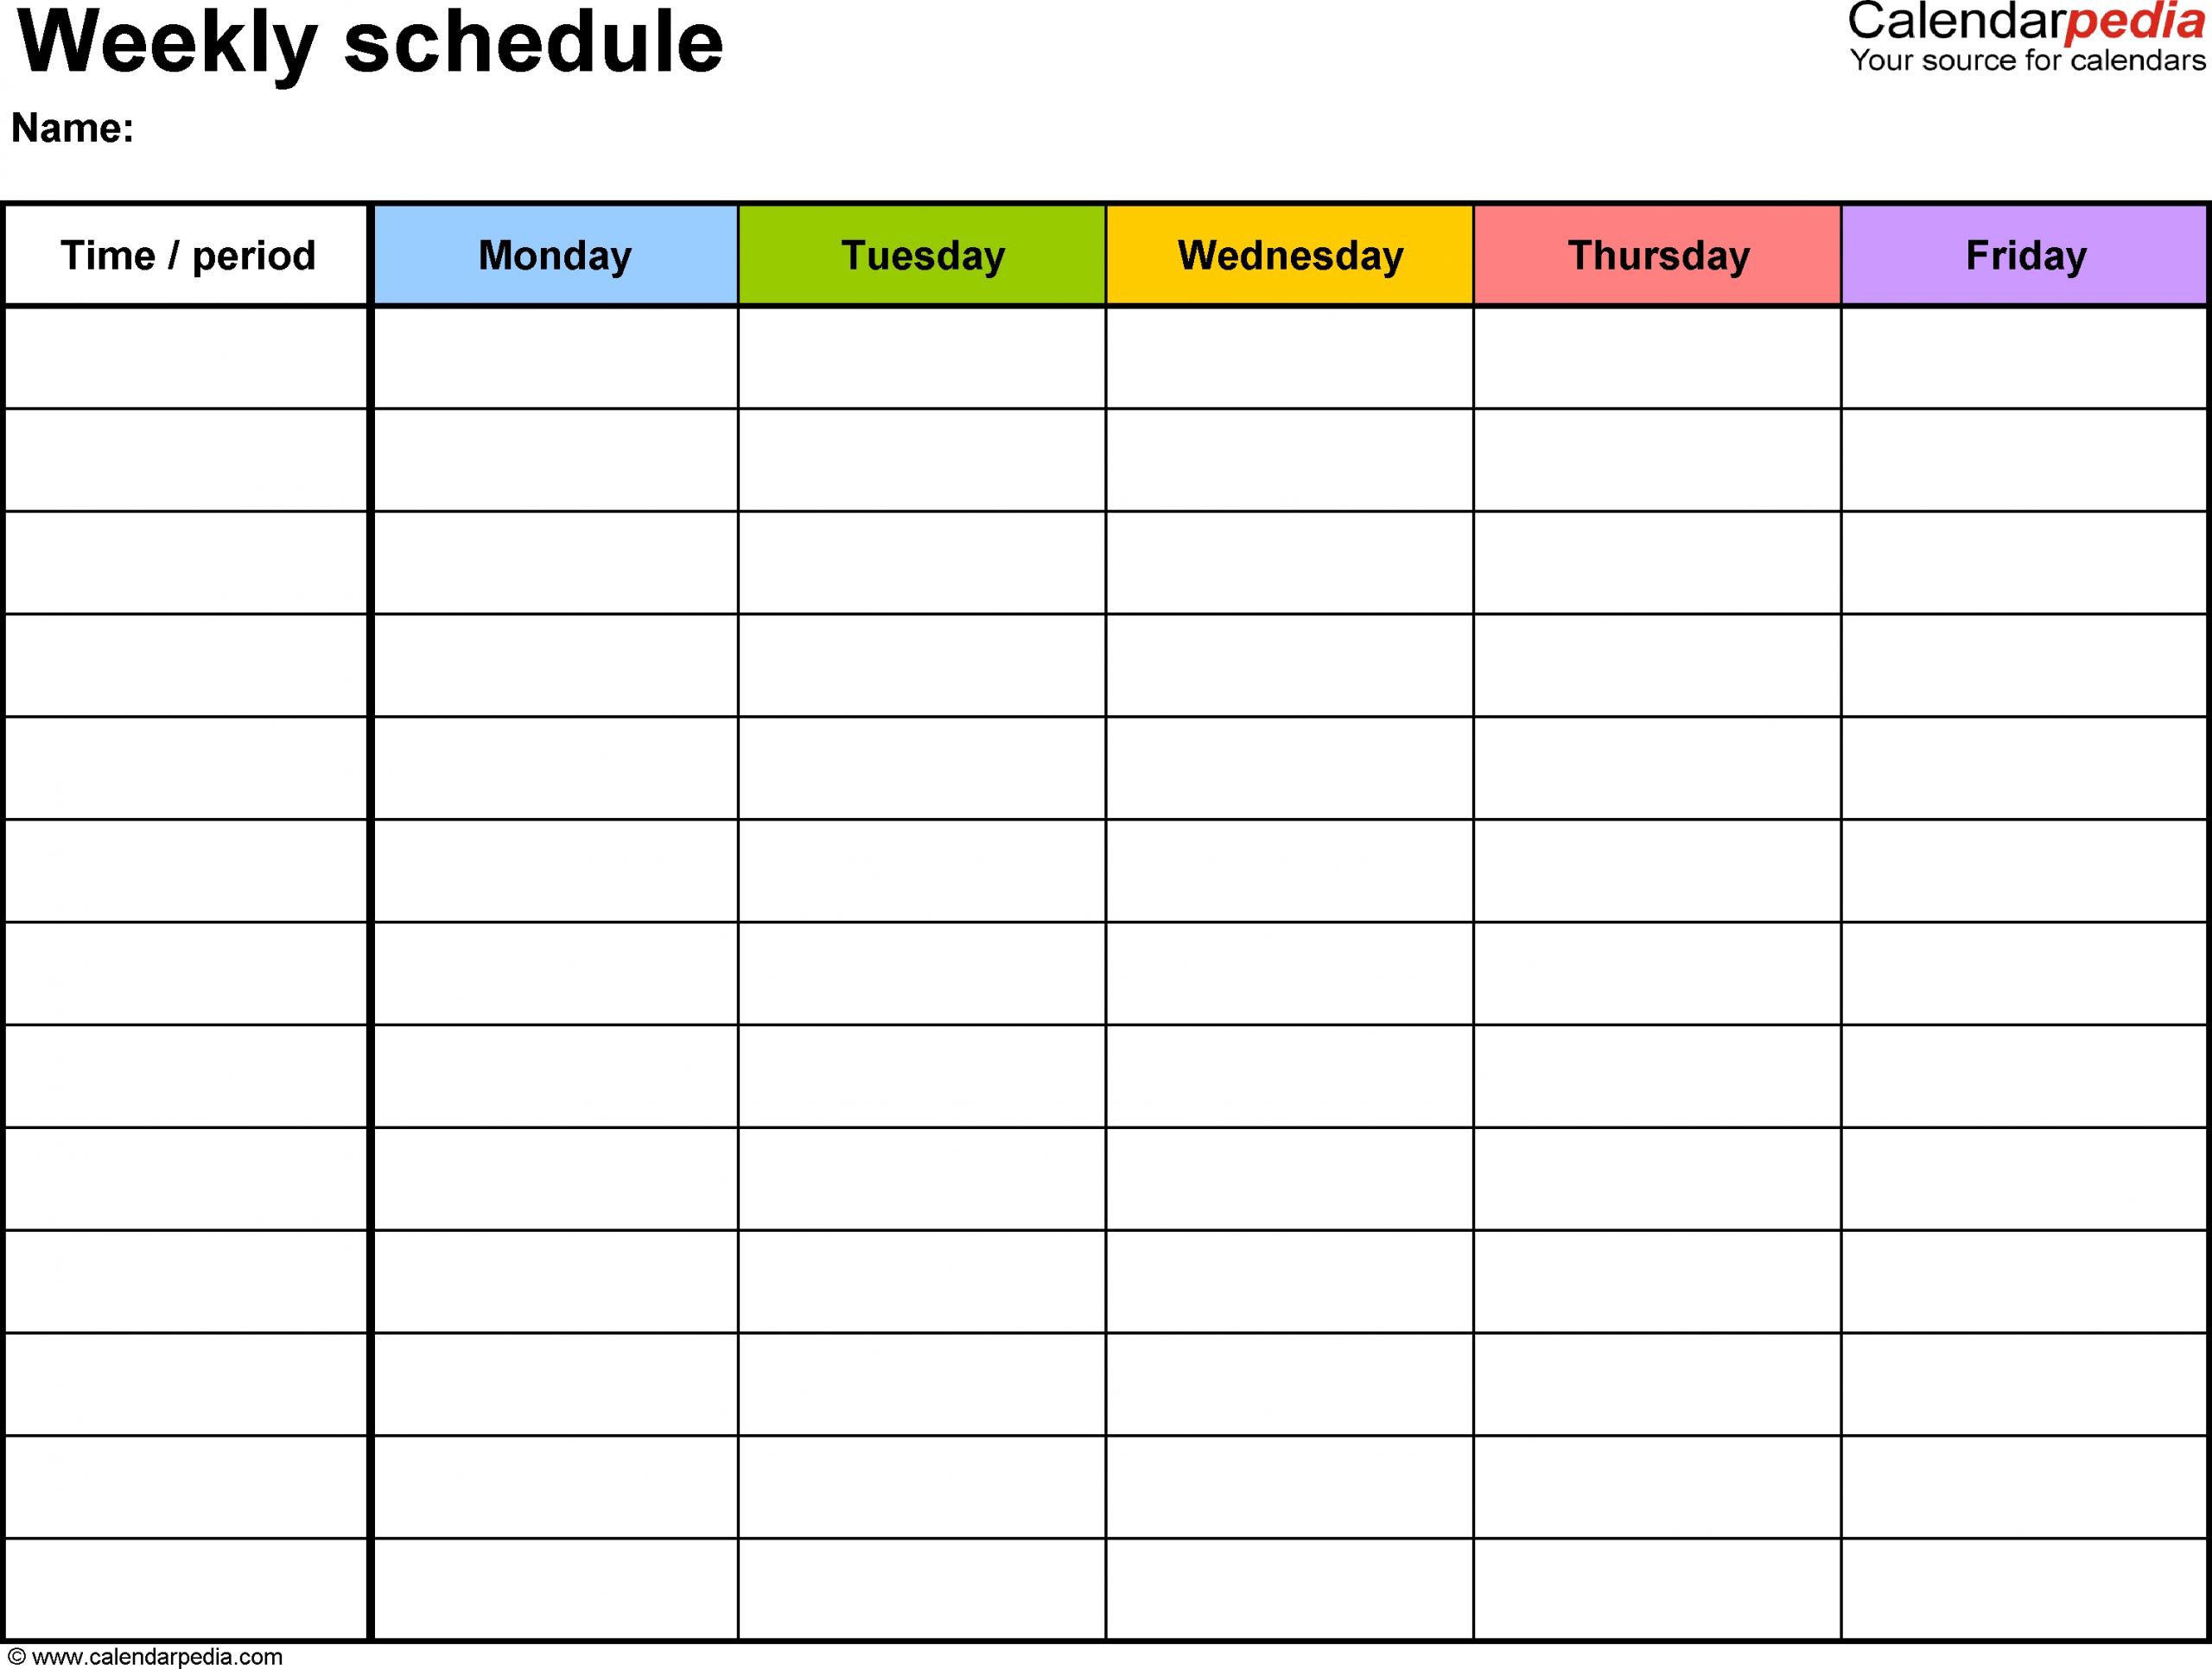 Free Weekly Schedule Templates For Pdf - 18 Templates pertaining to Weekly Calendar With Yearly And Monthy Agenda